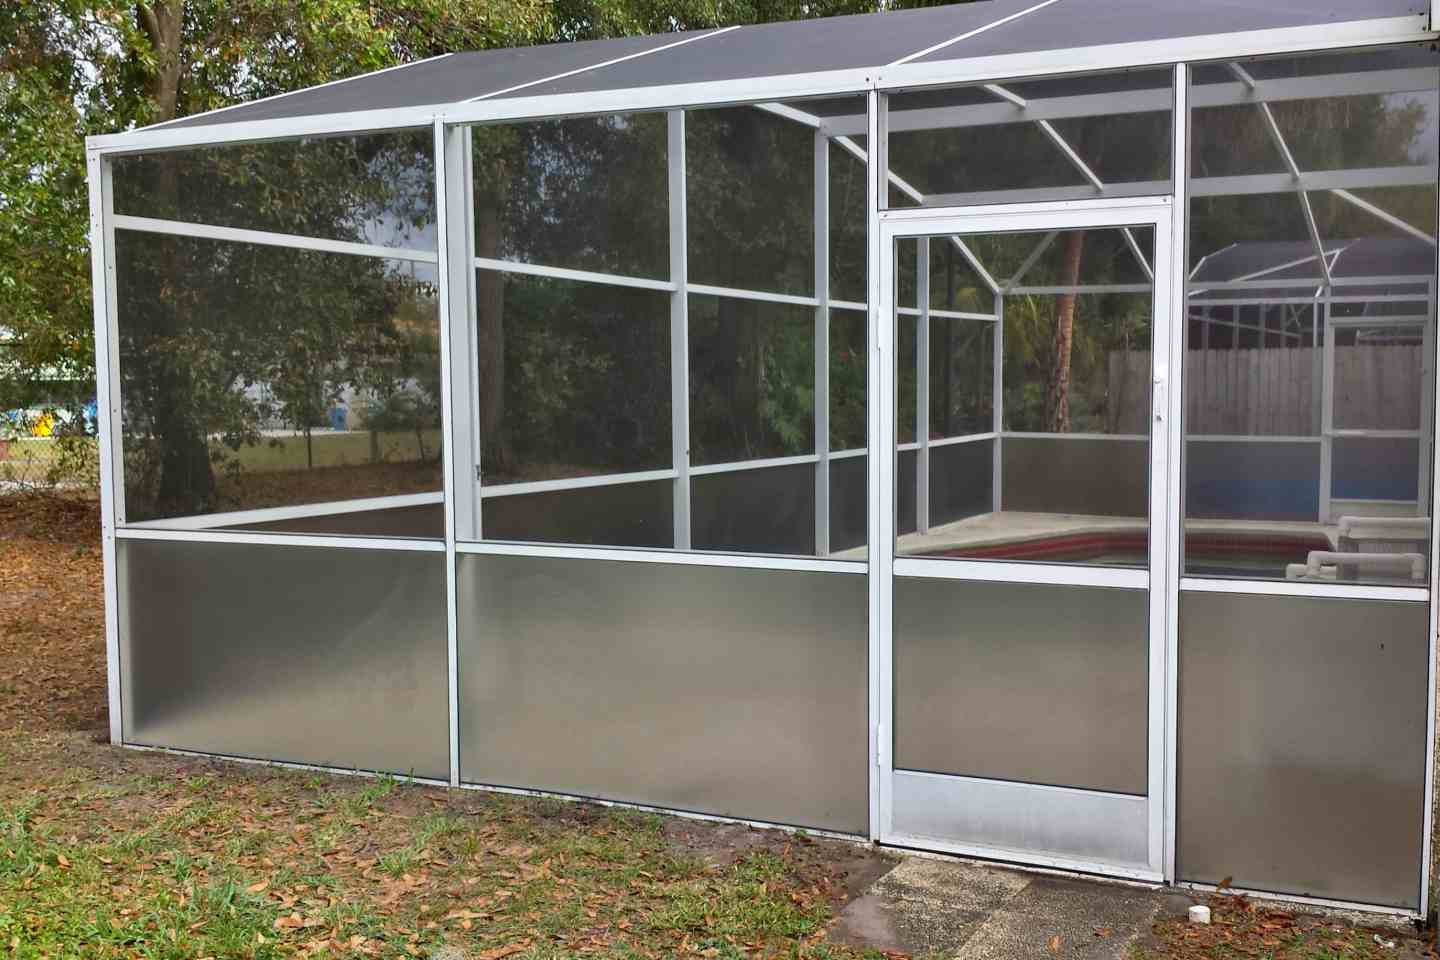 09-pool-enclosure-florida-glass-after-re-screen.jpg